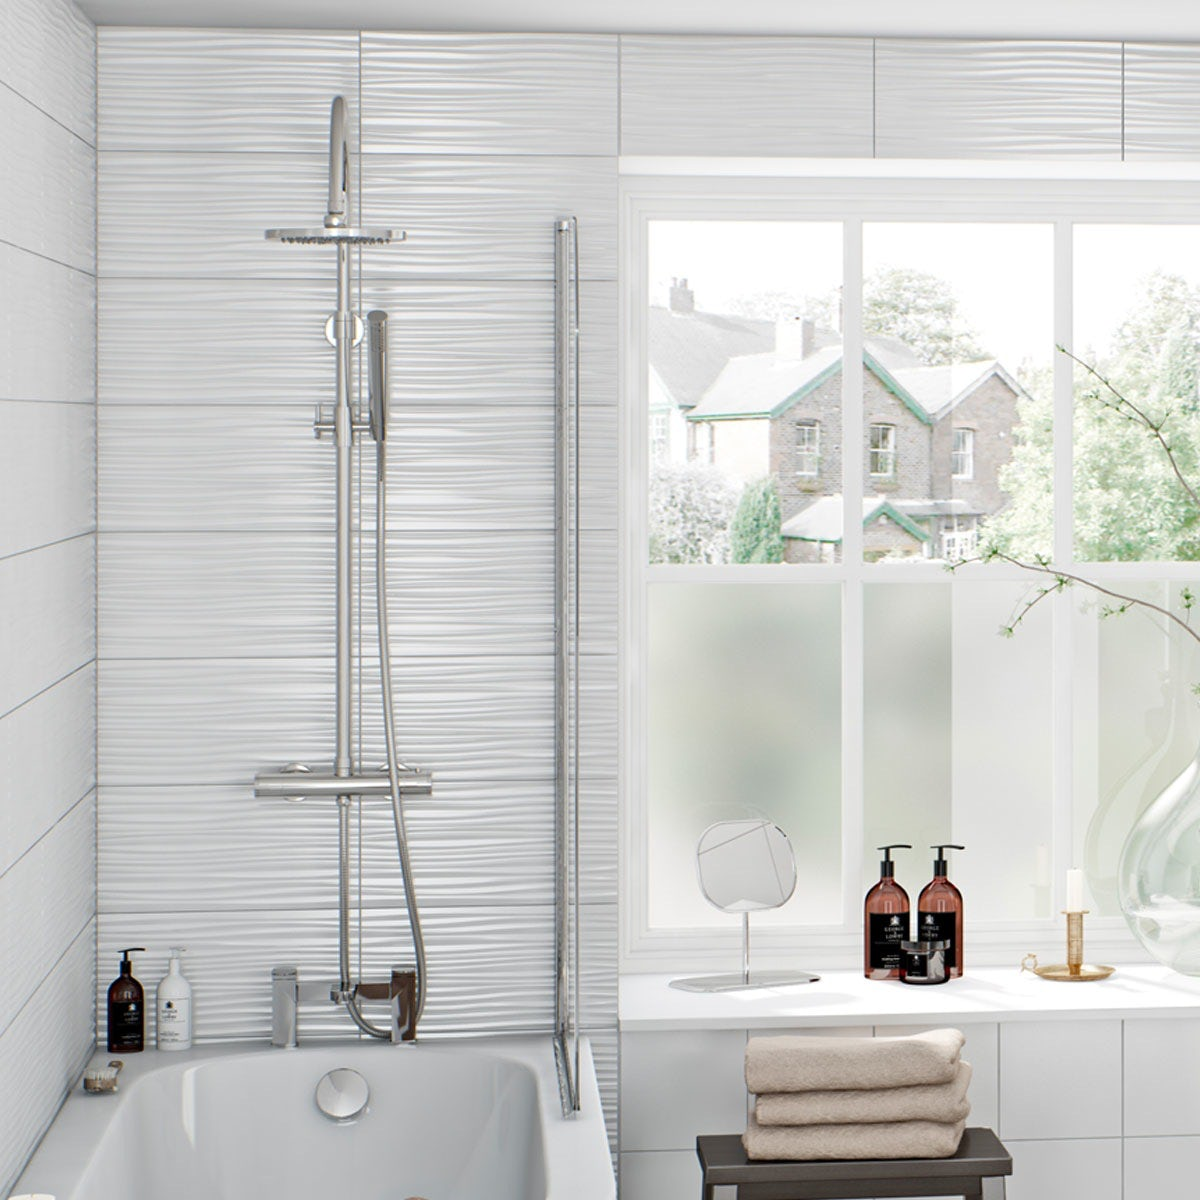 Tiles inspiration gallery for 8x12 bathroom ideas